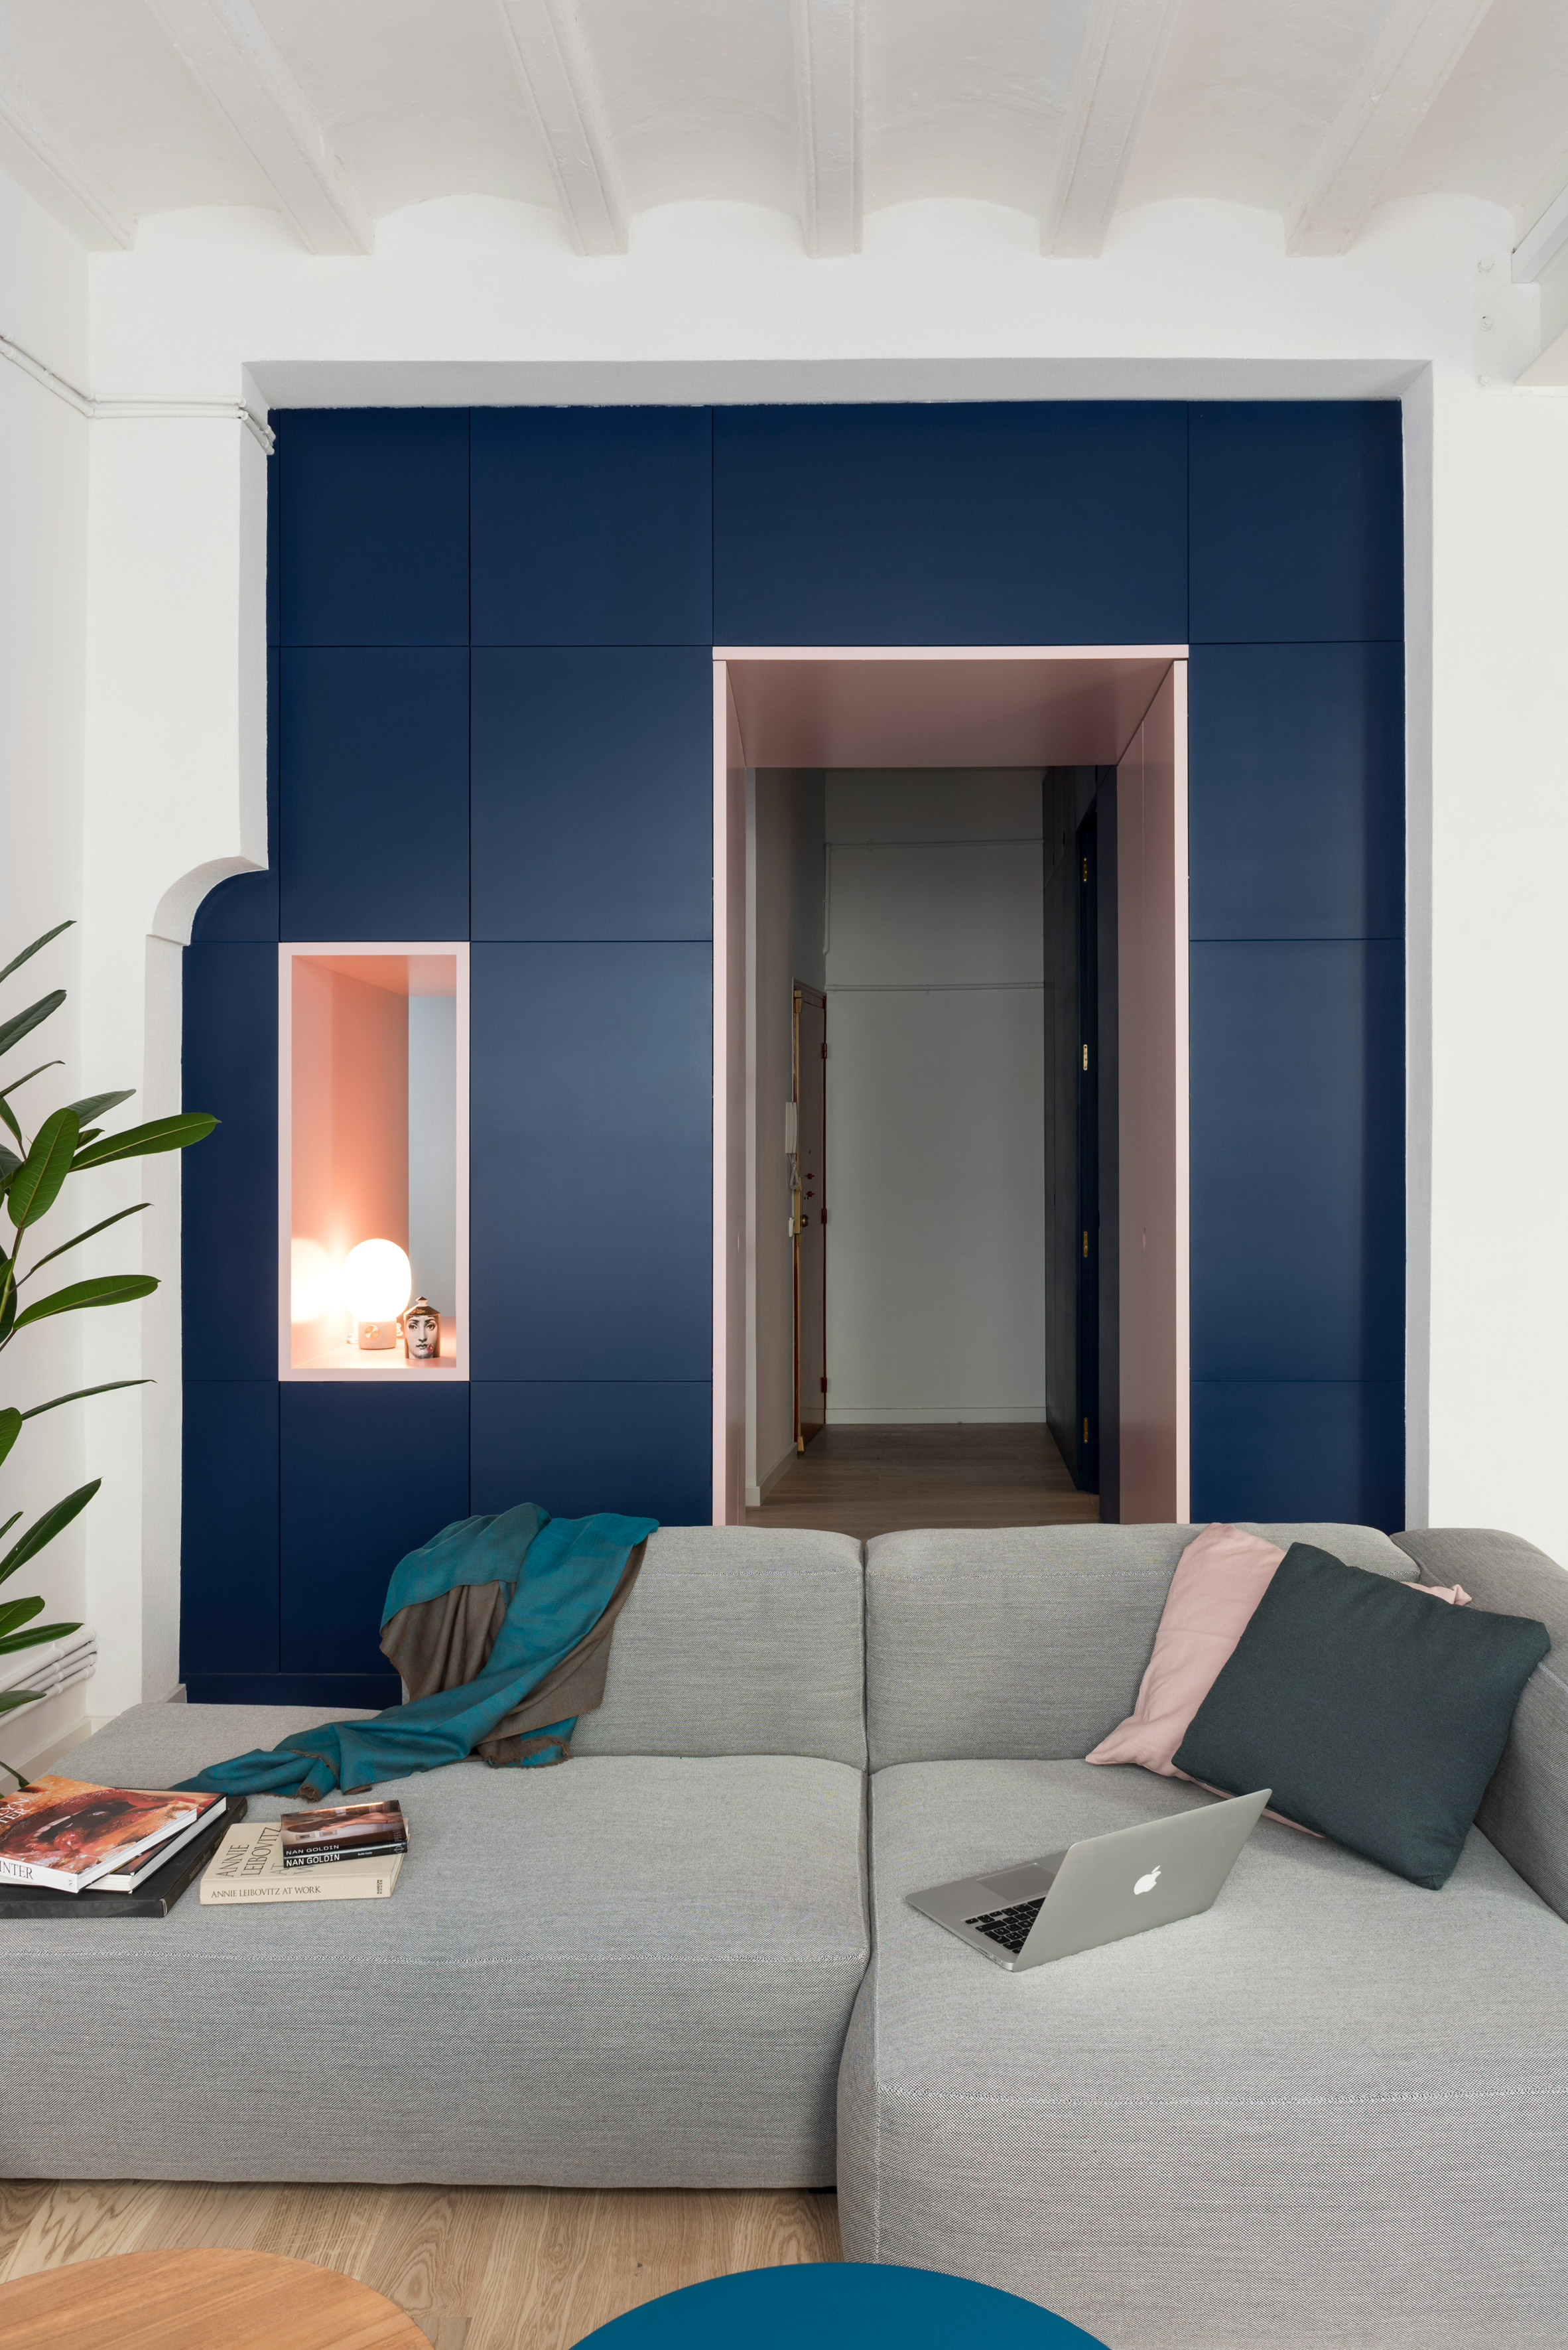 Deep blue cabinetry and coral pink arches redefine Barcelona